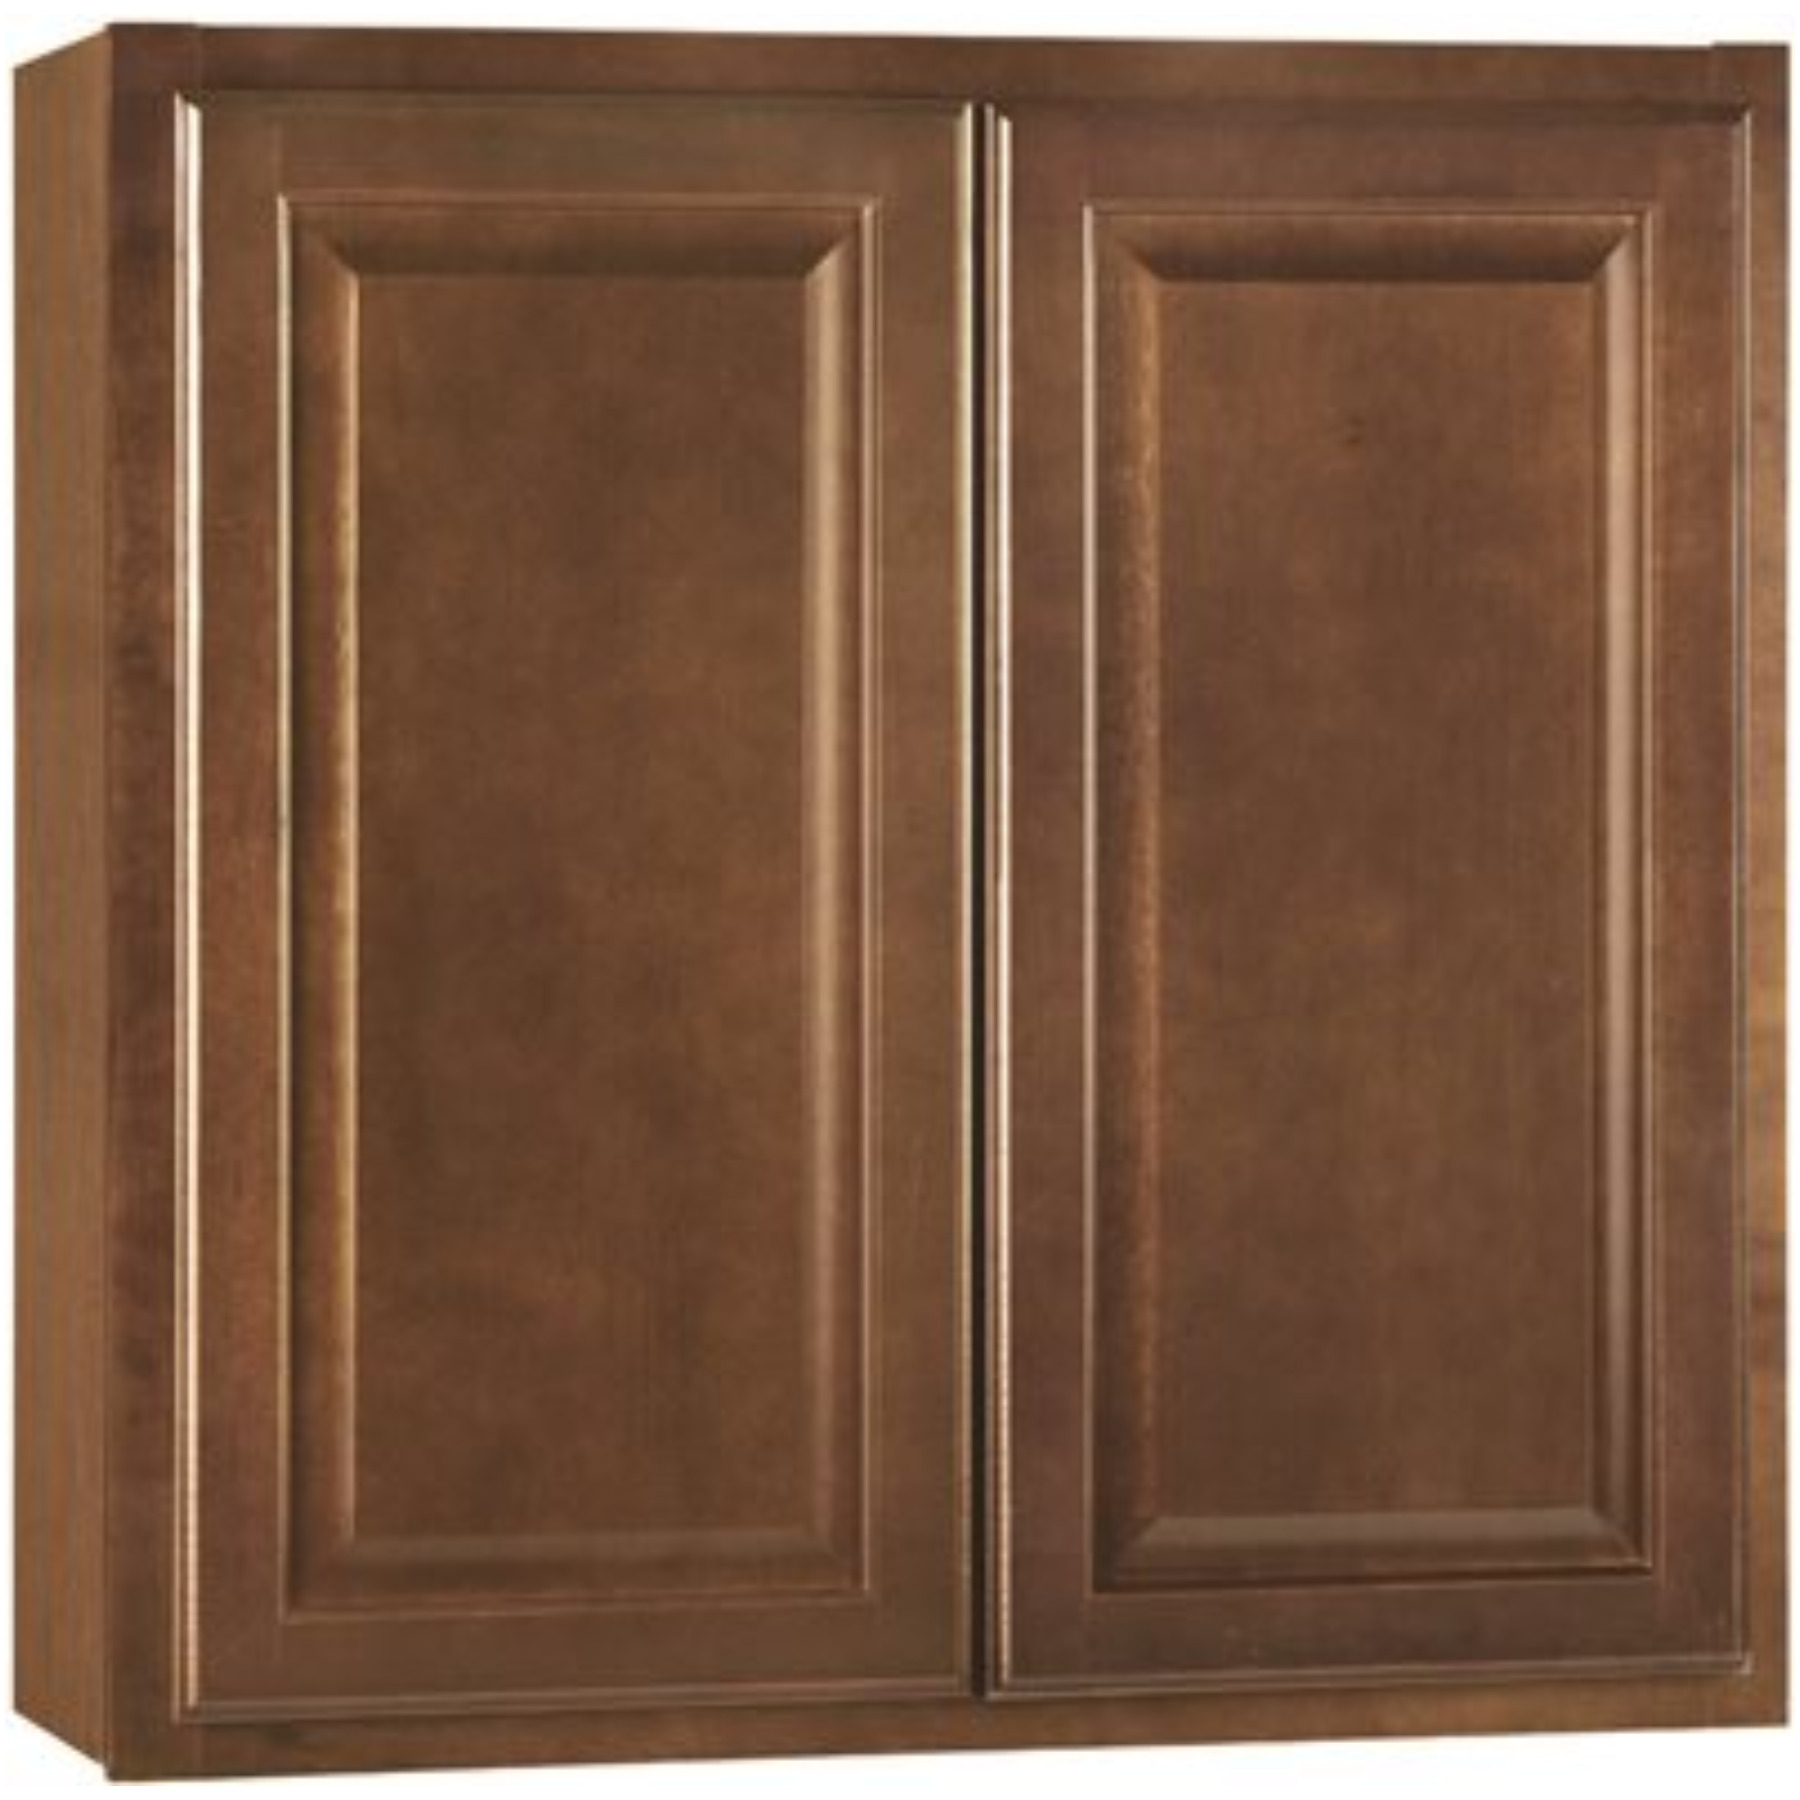 RSI HOME PRODUCTS HAMILTON KITCHEN WALL CABINET, FULLY ASSEMBLED, RAISED PANEL, CAFE, 30X30X12 IN.